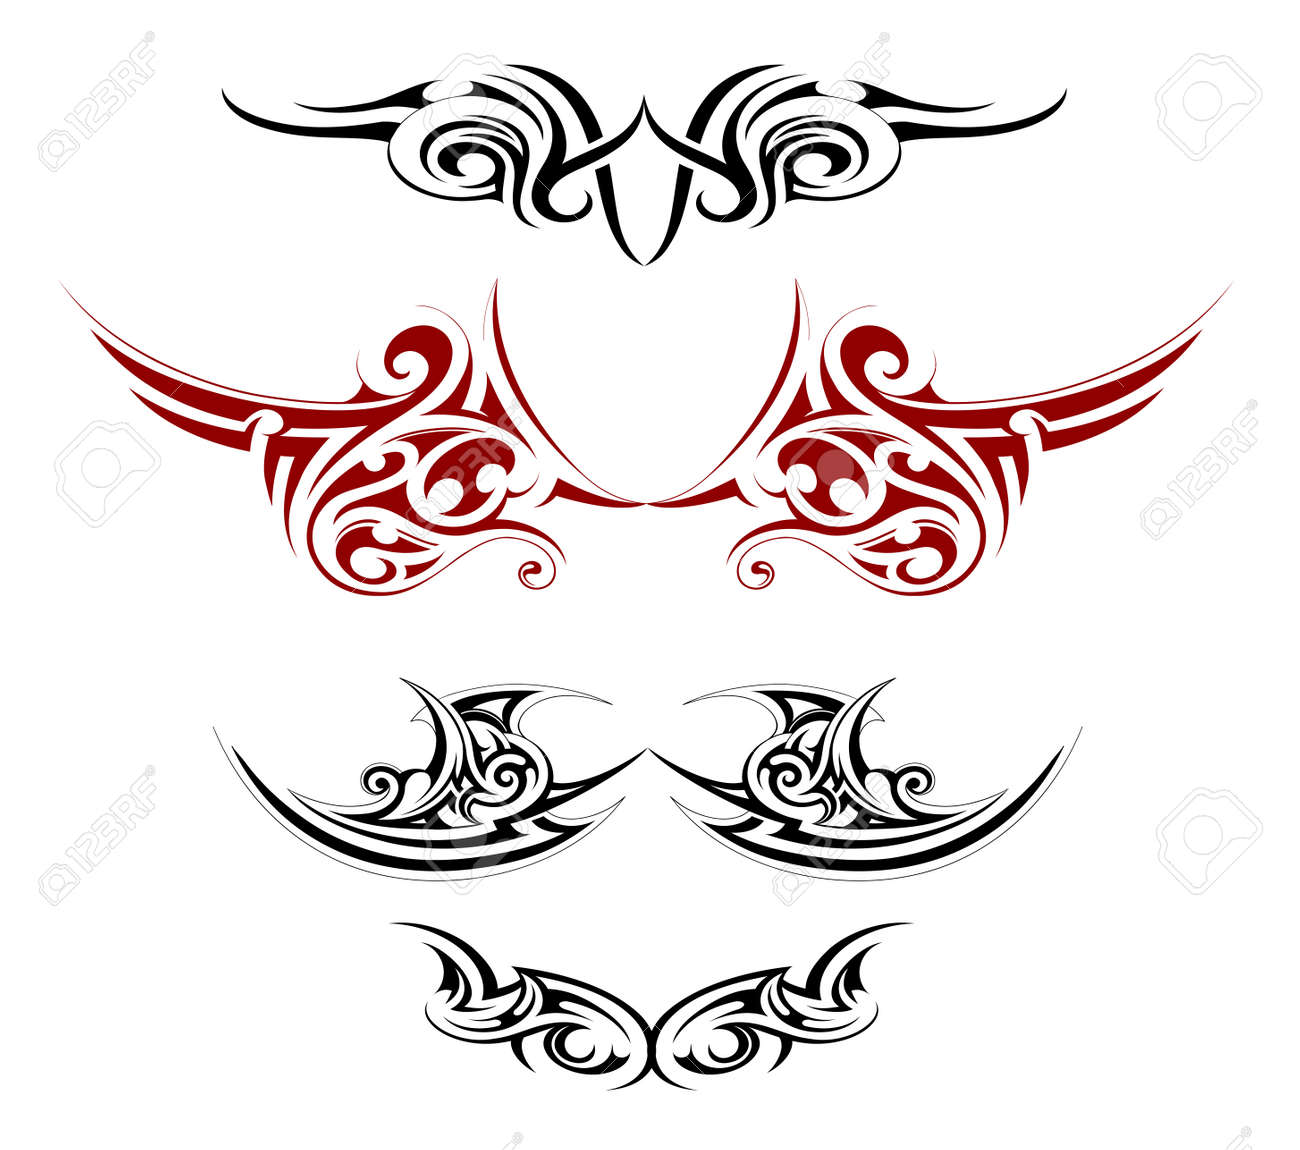 Set of various decorative wings tattoo designs - 31668541